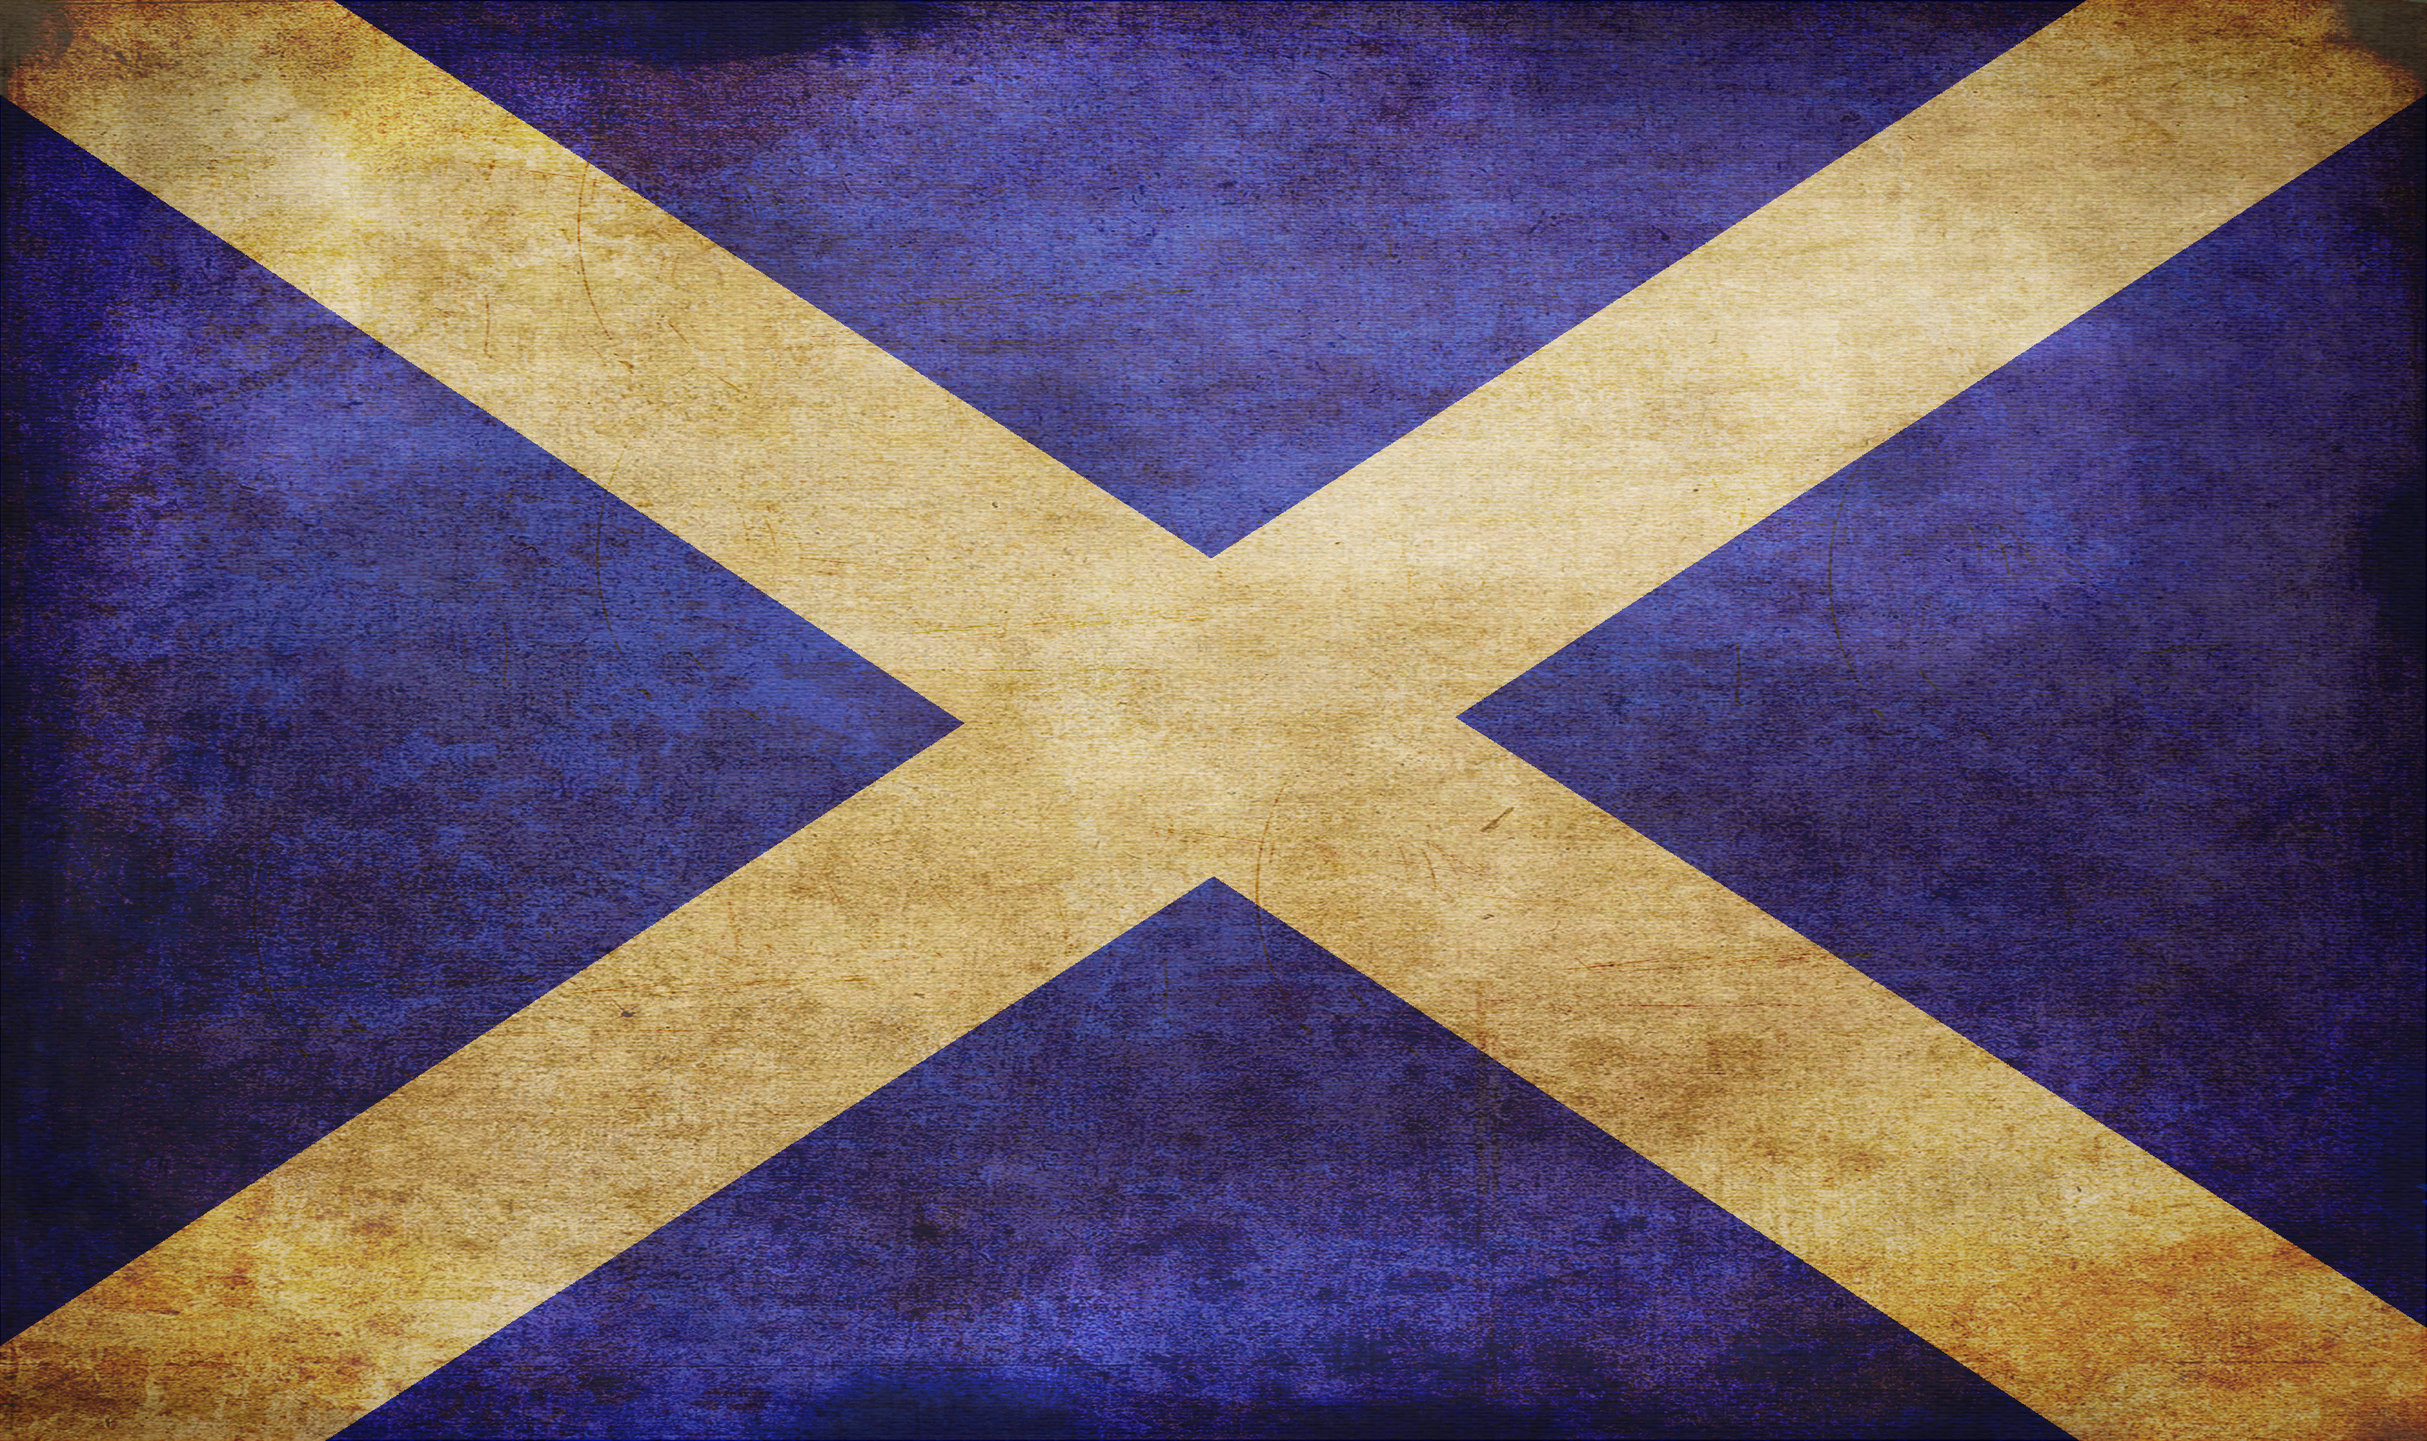 Scotland - Grunge by tonemapped on DeviantArt